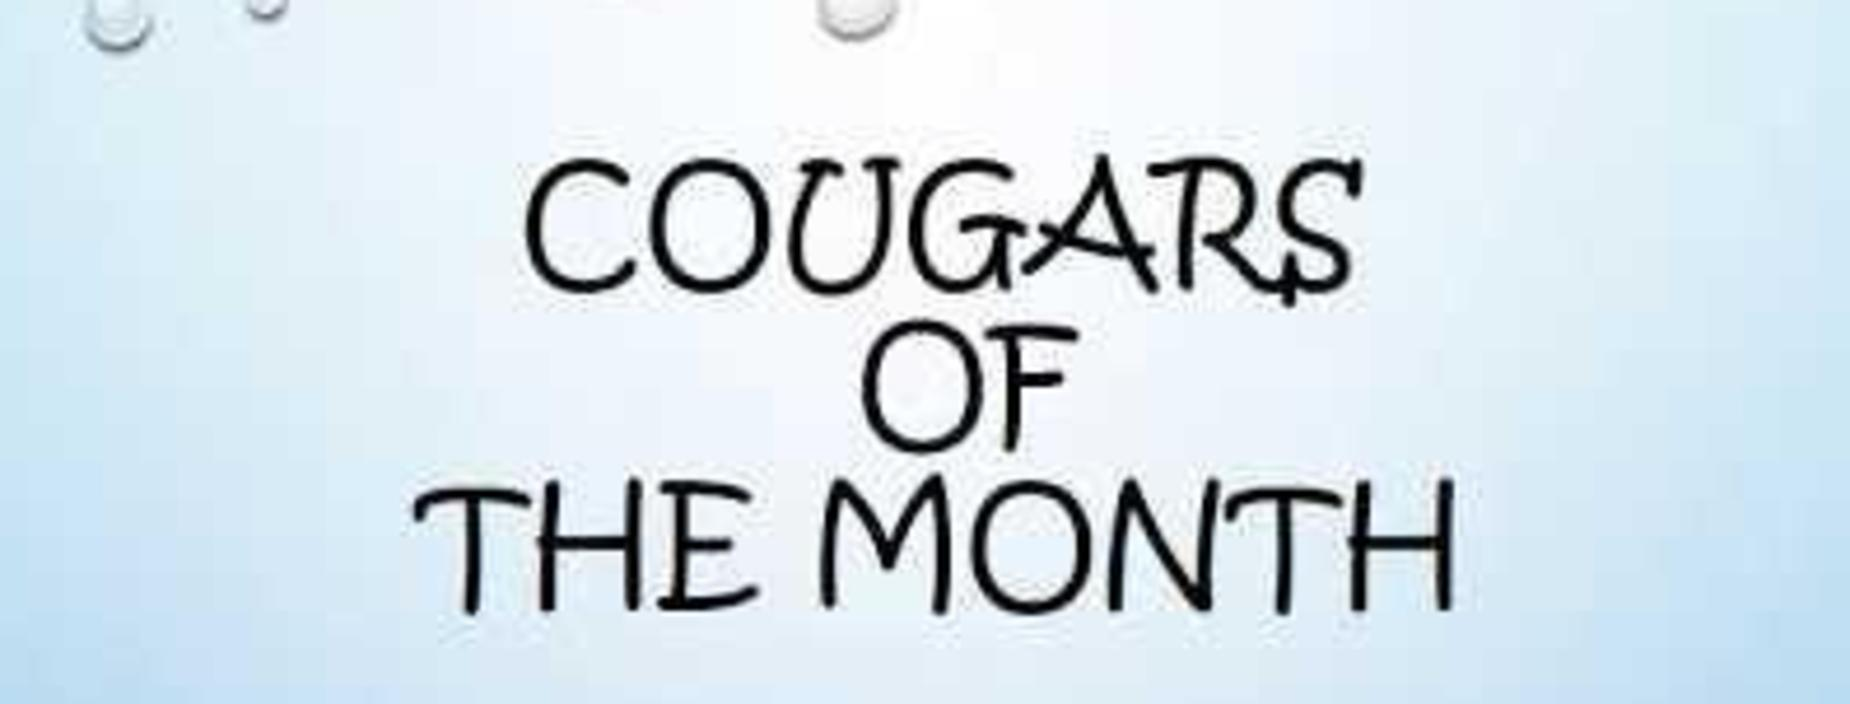 cougars of the month